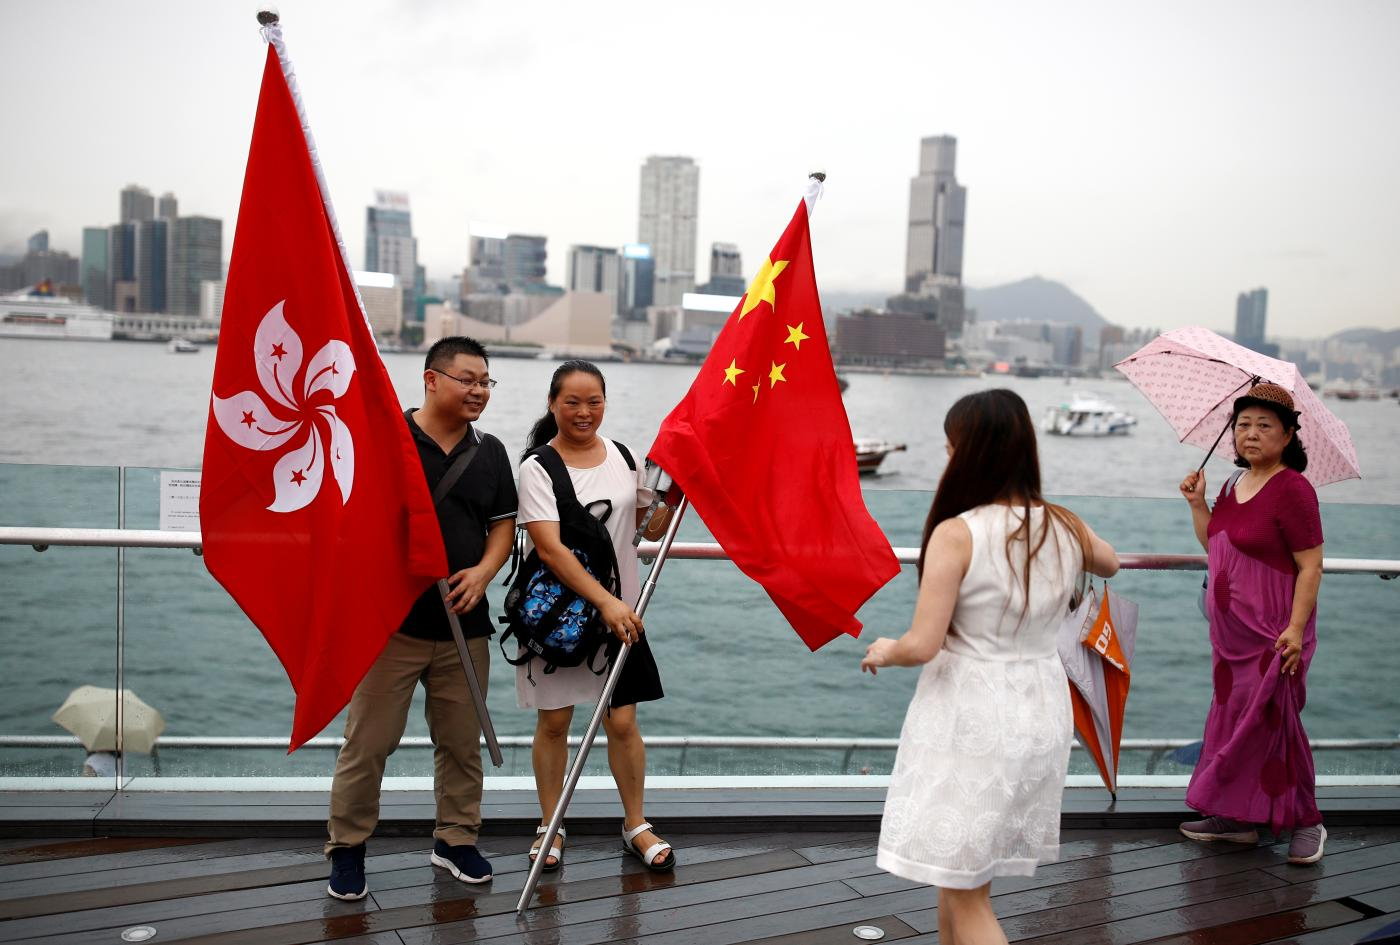 Chinese supporters of Hong Kong protests face doxxing - Quartz